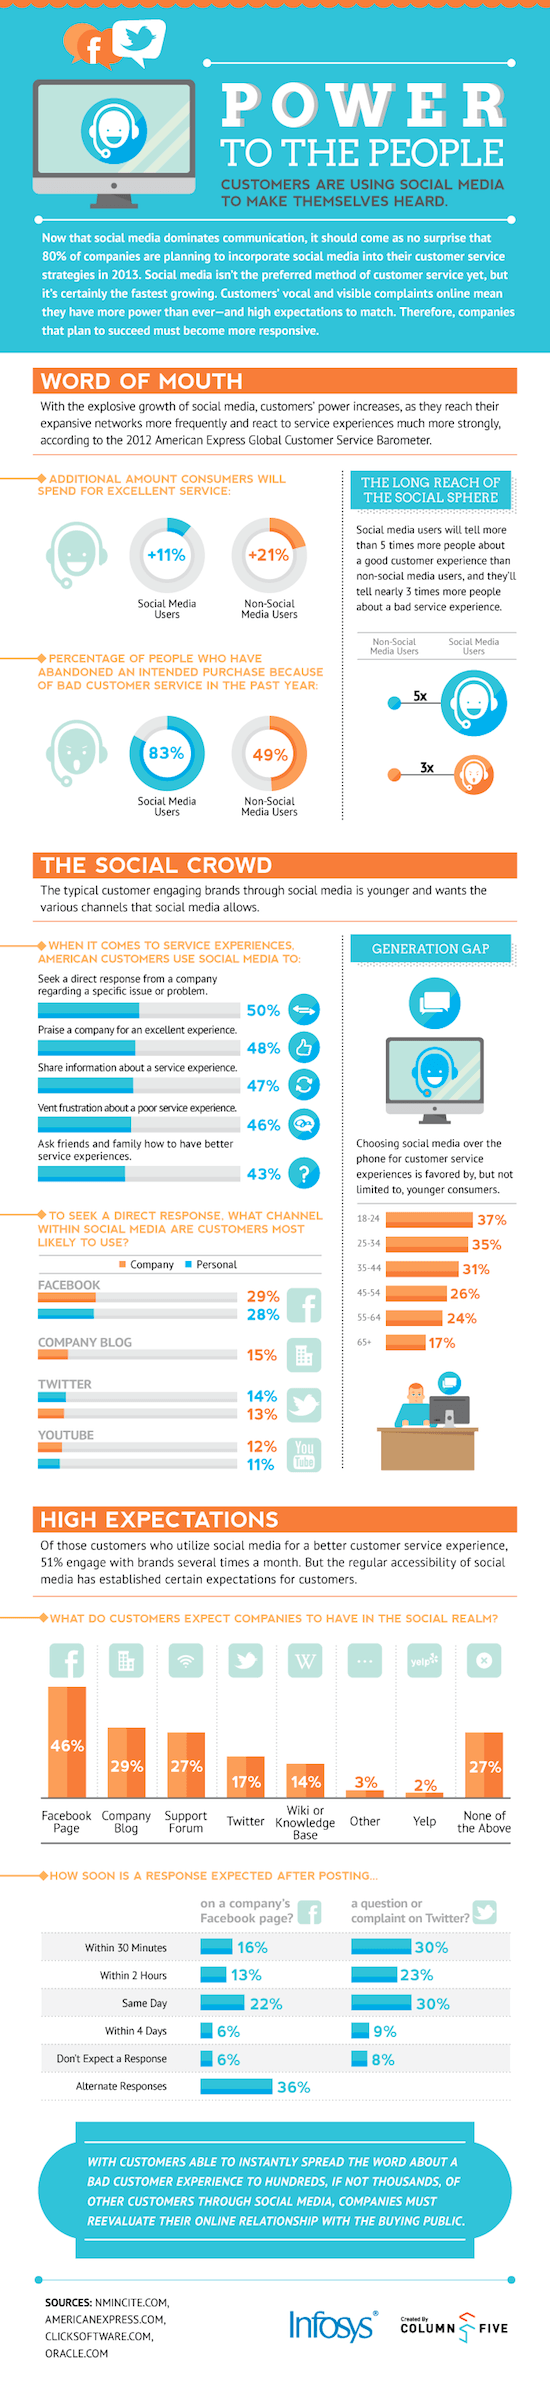 infographie-social-media-power-people